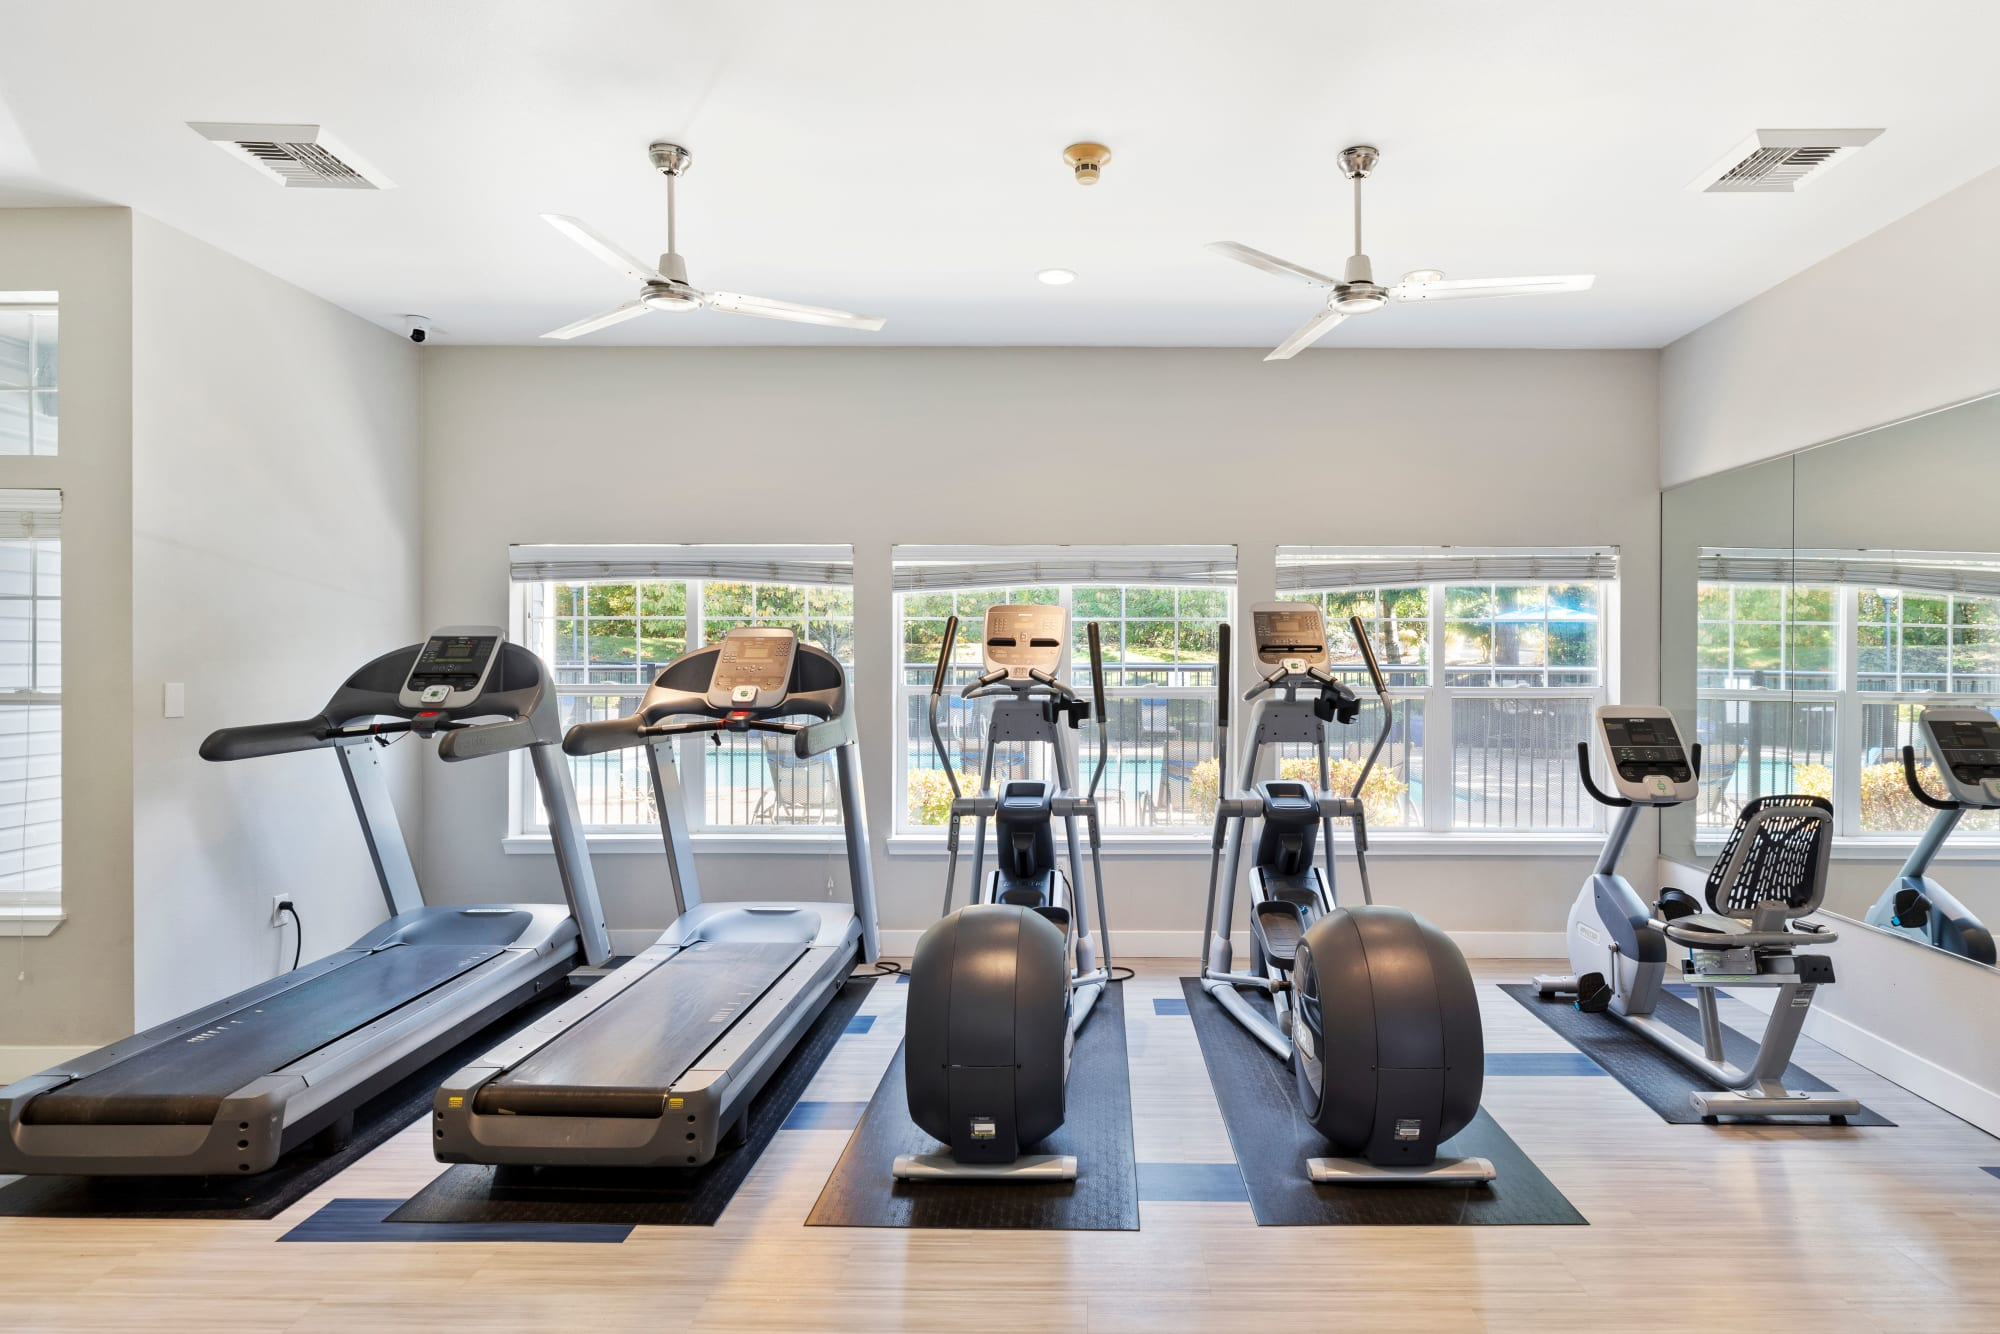 Fitness center with boxing machines and cardio at Pebble Cove Apartments in Renton